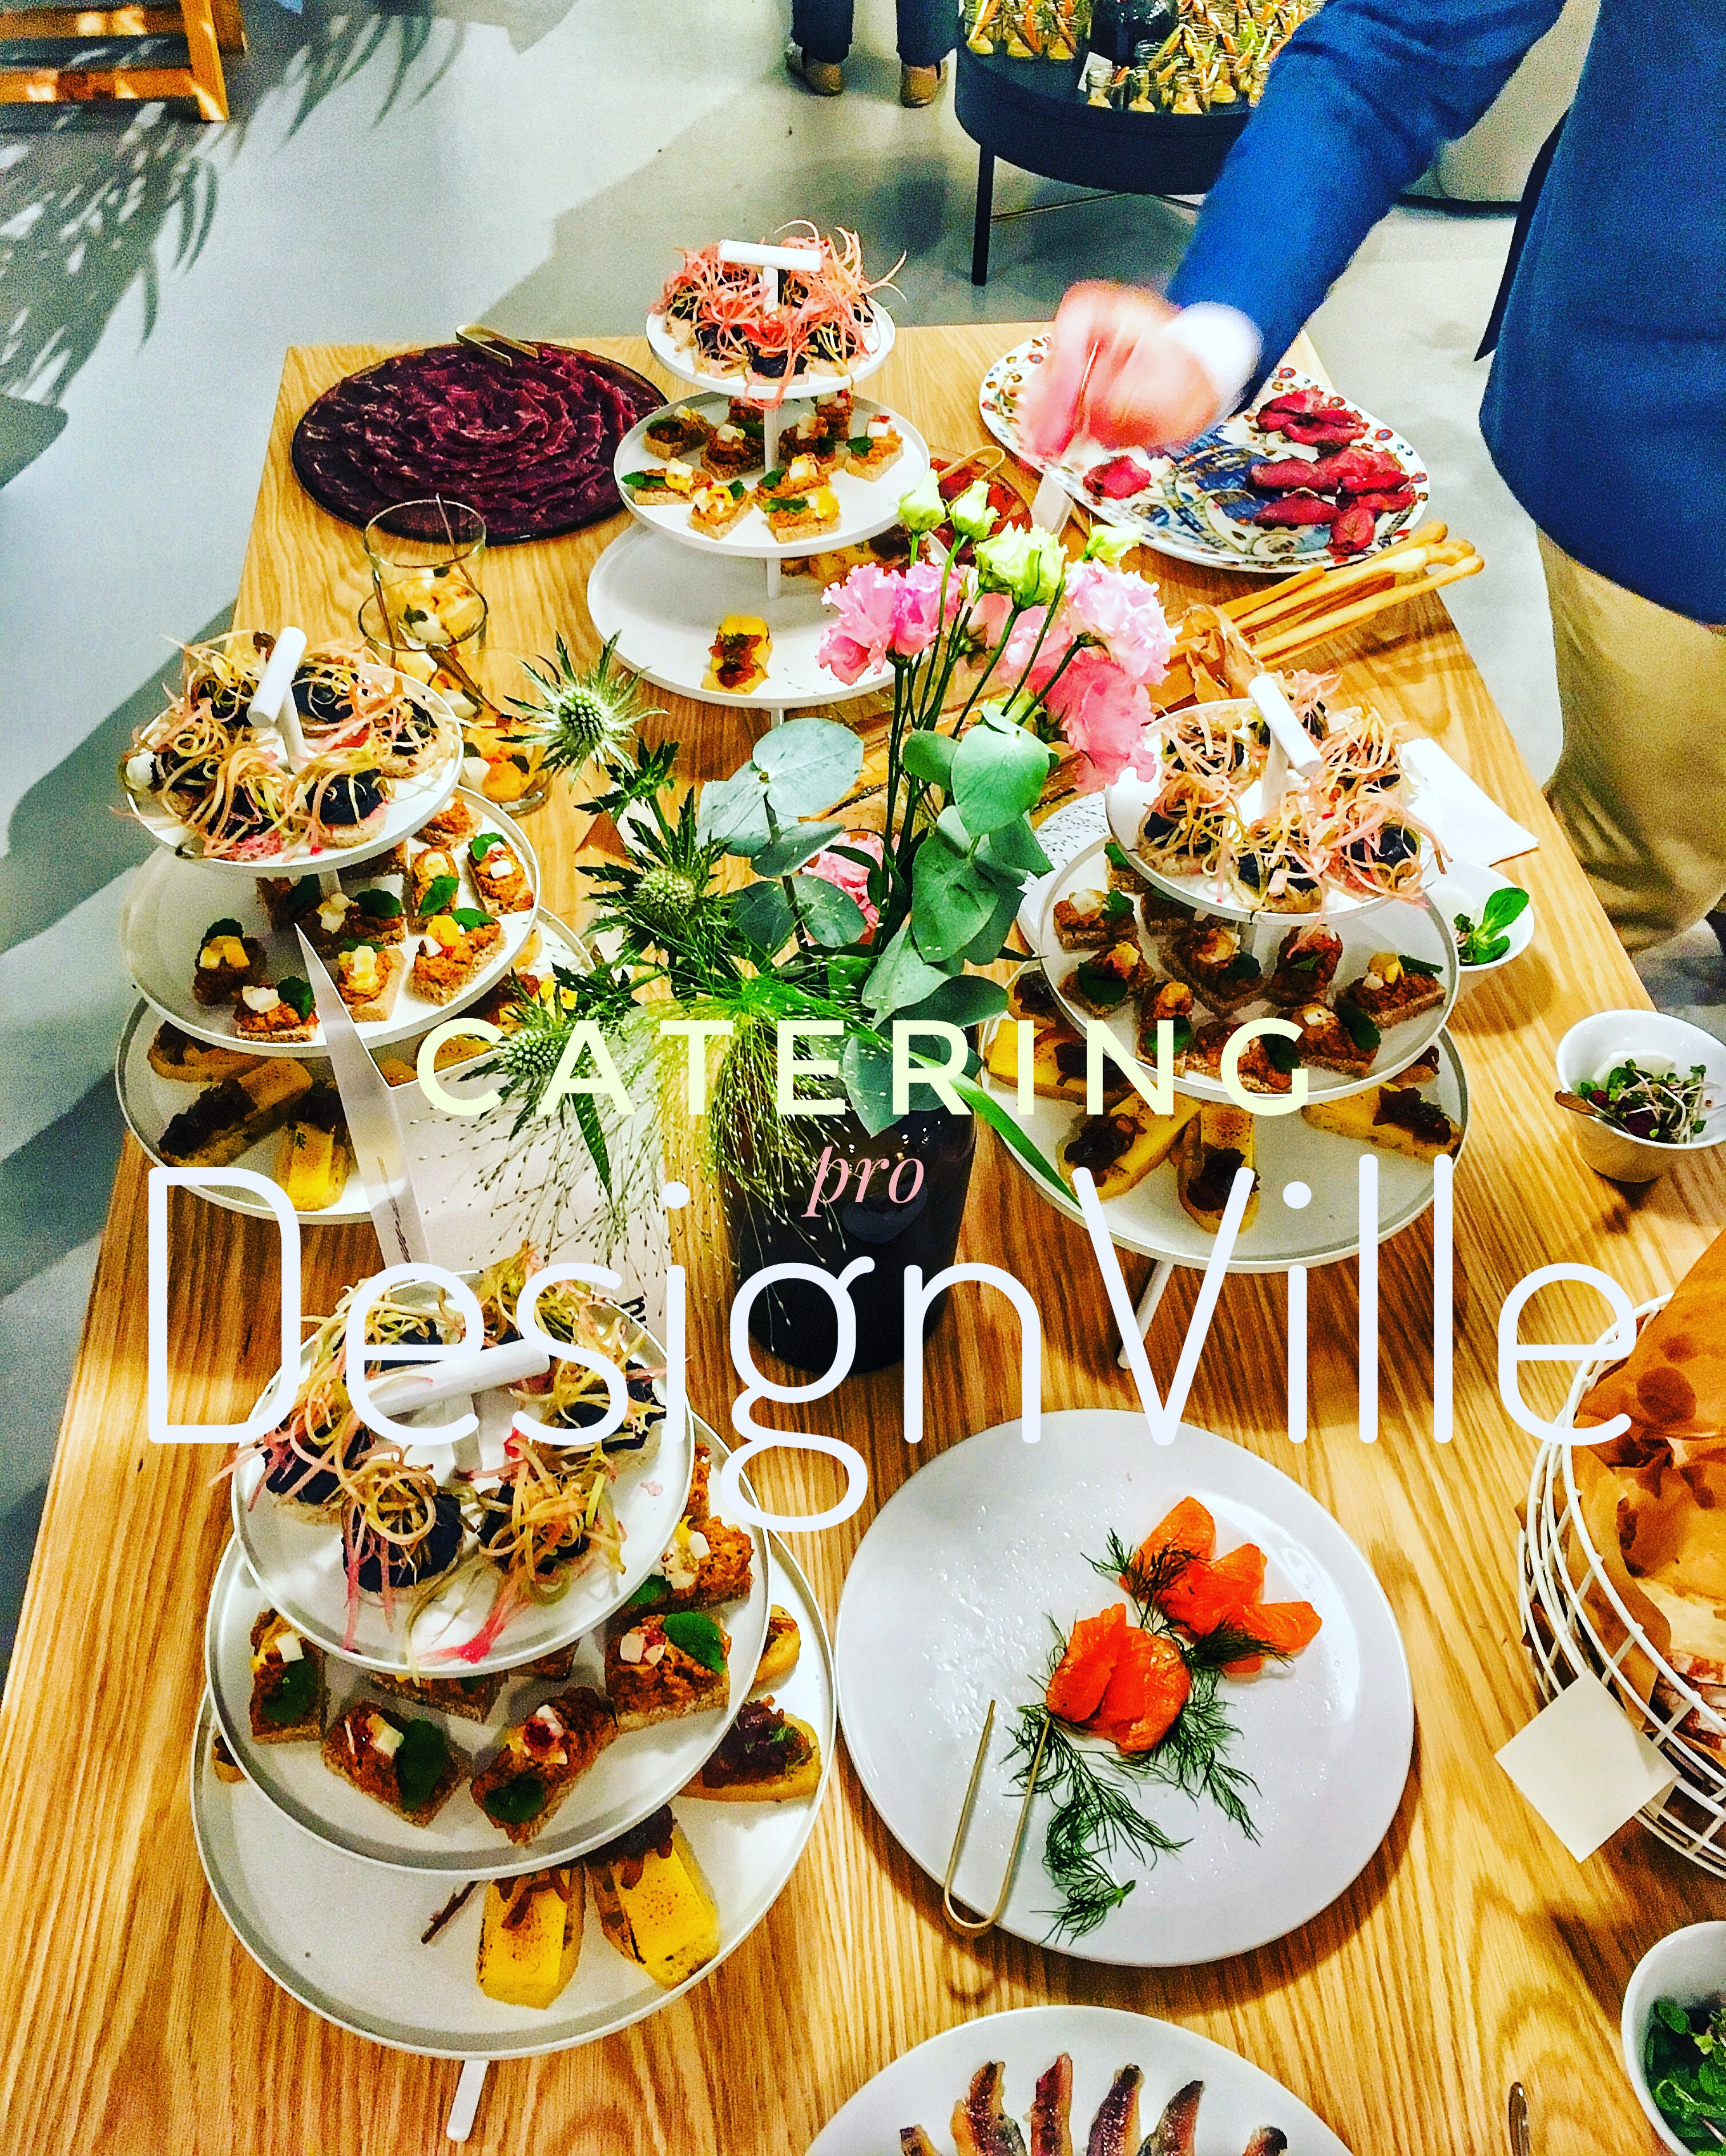 DesignVille Showroom Opening